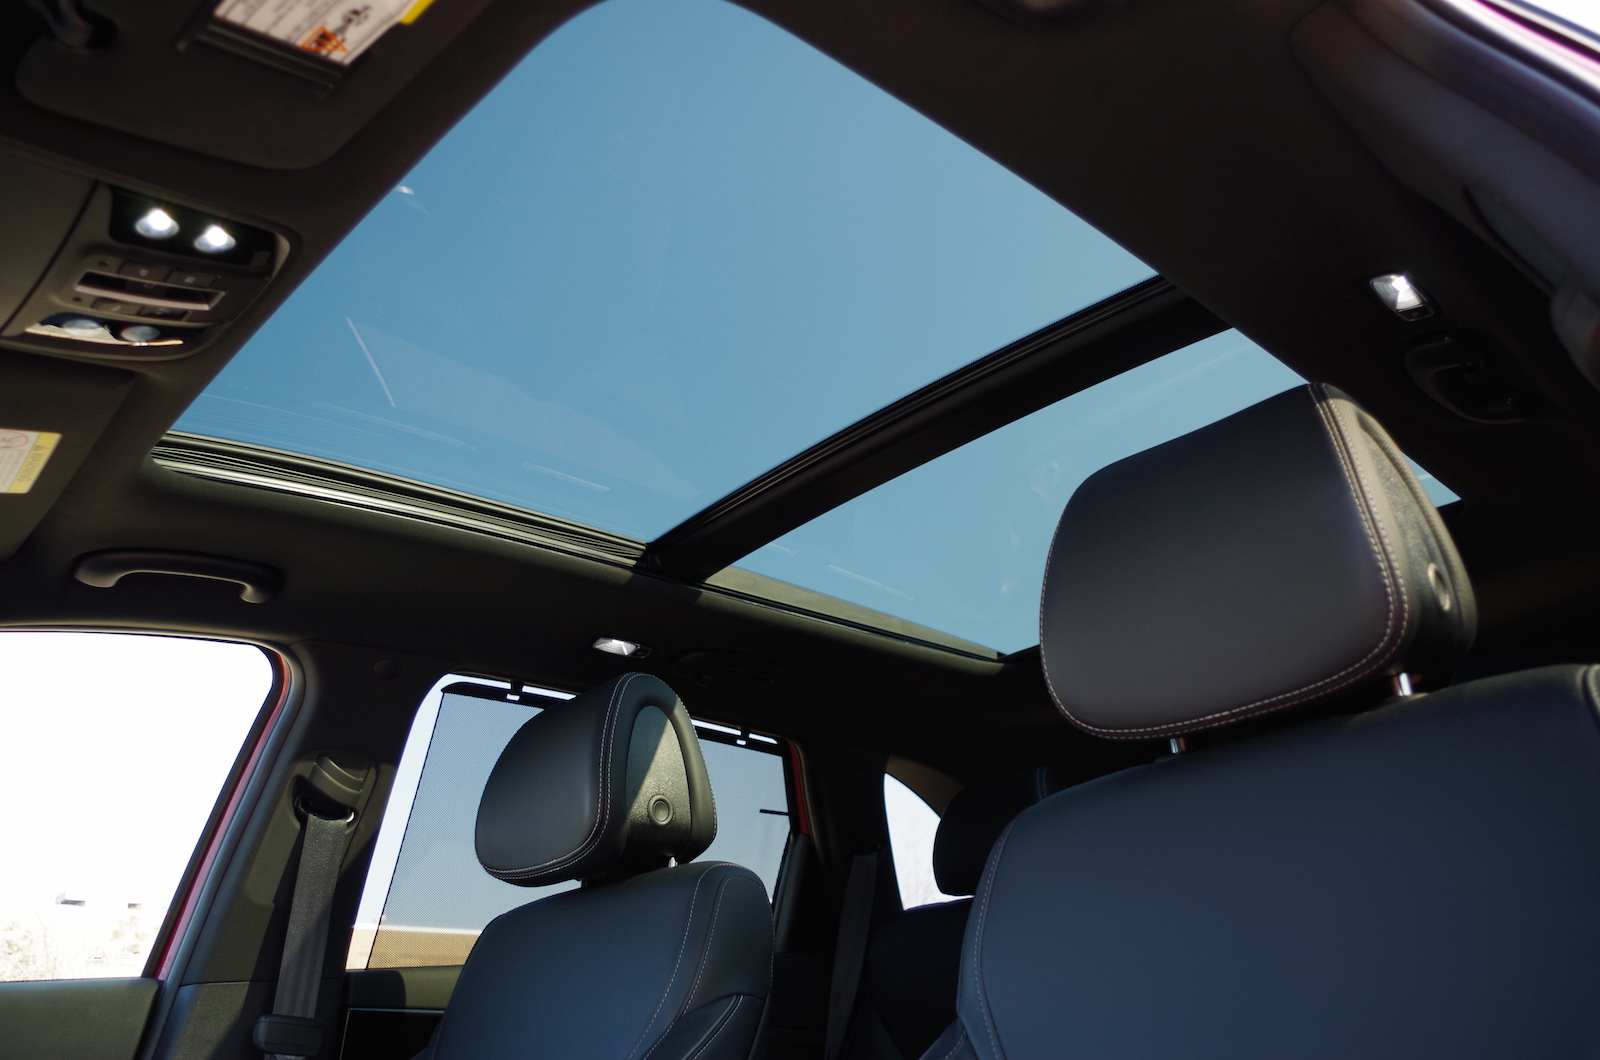 Kia Sorento: Panoramic sunroof